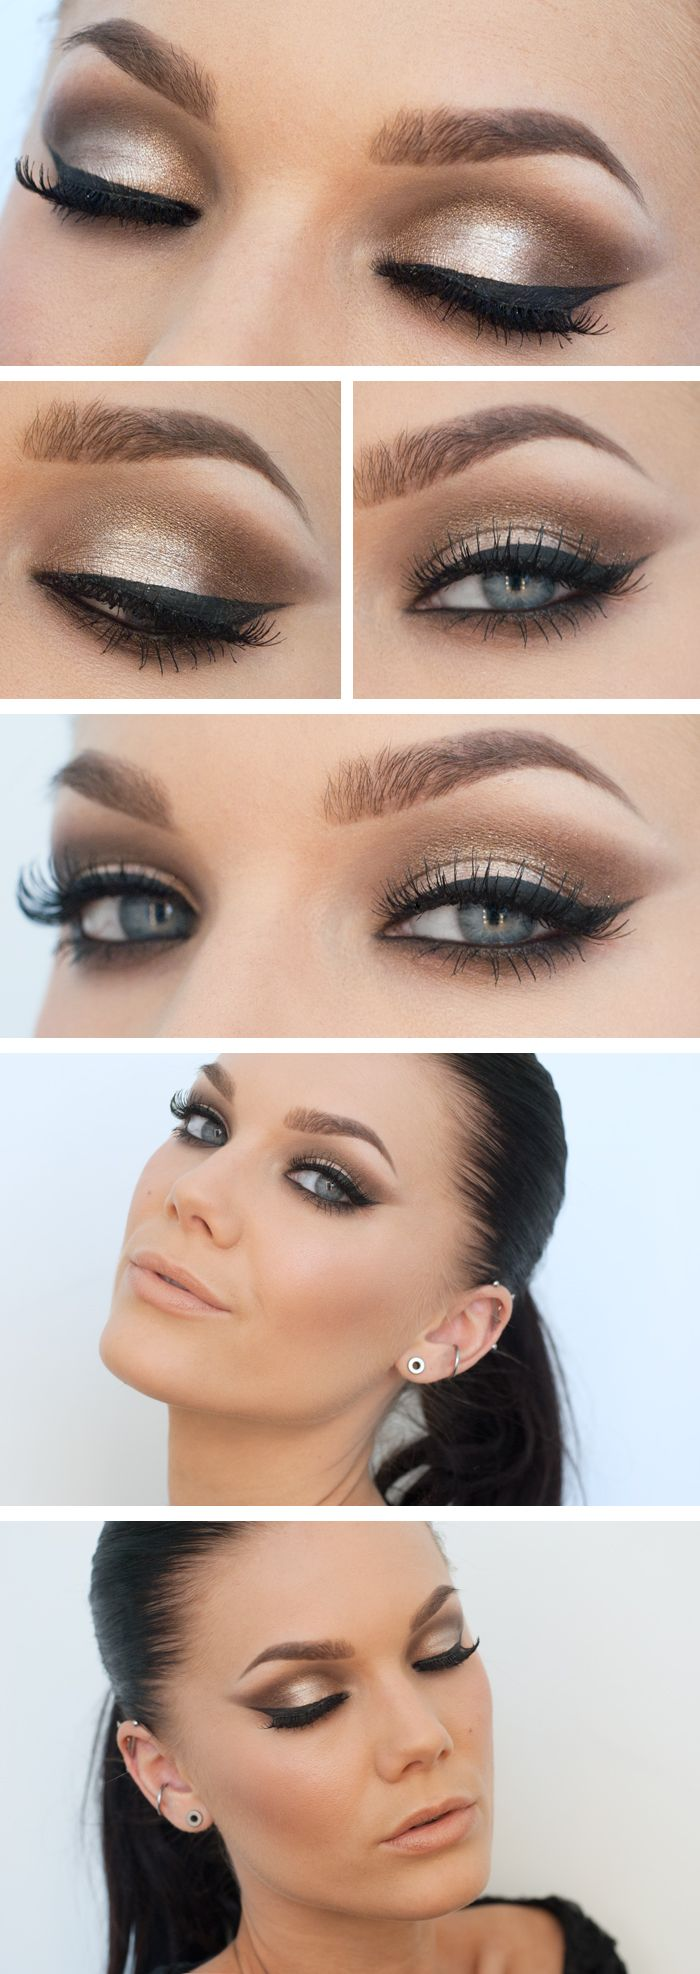 How To Apply Eyeliner For Beginners €� Step By Step Instructions